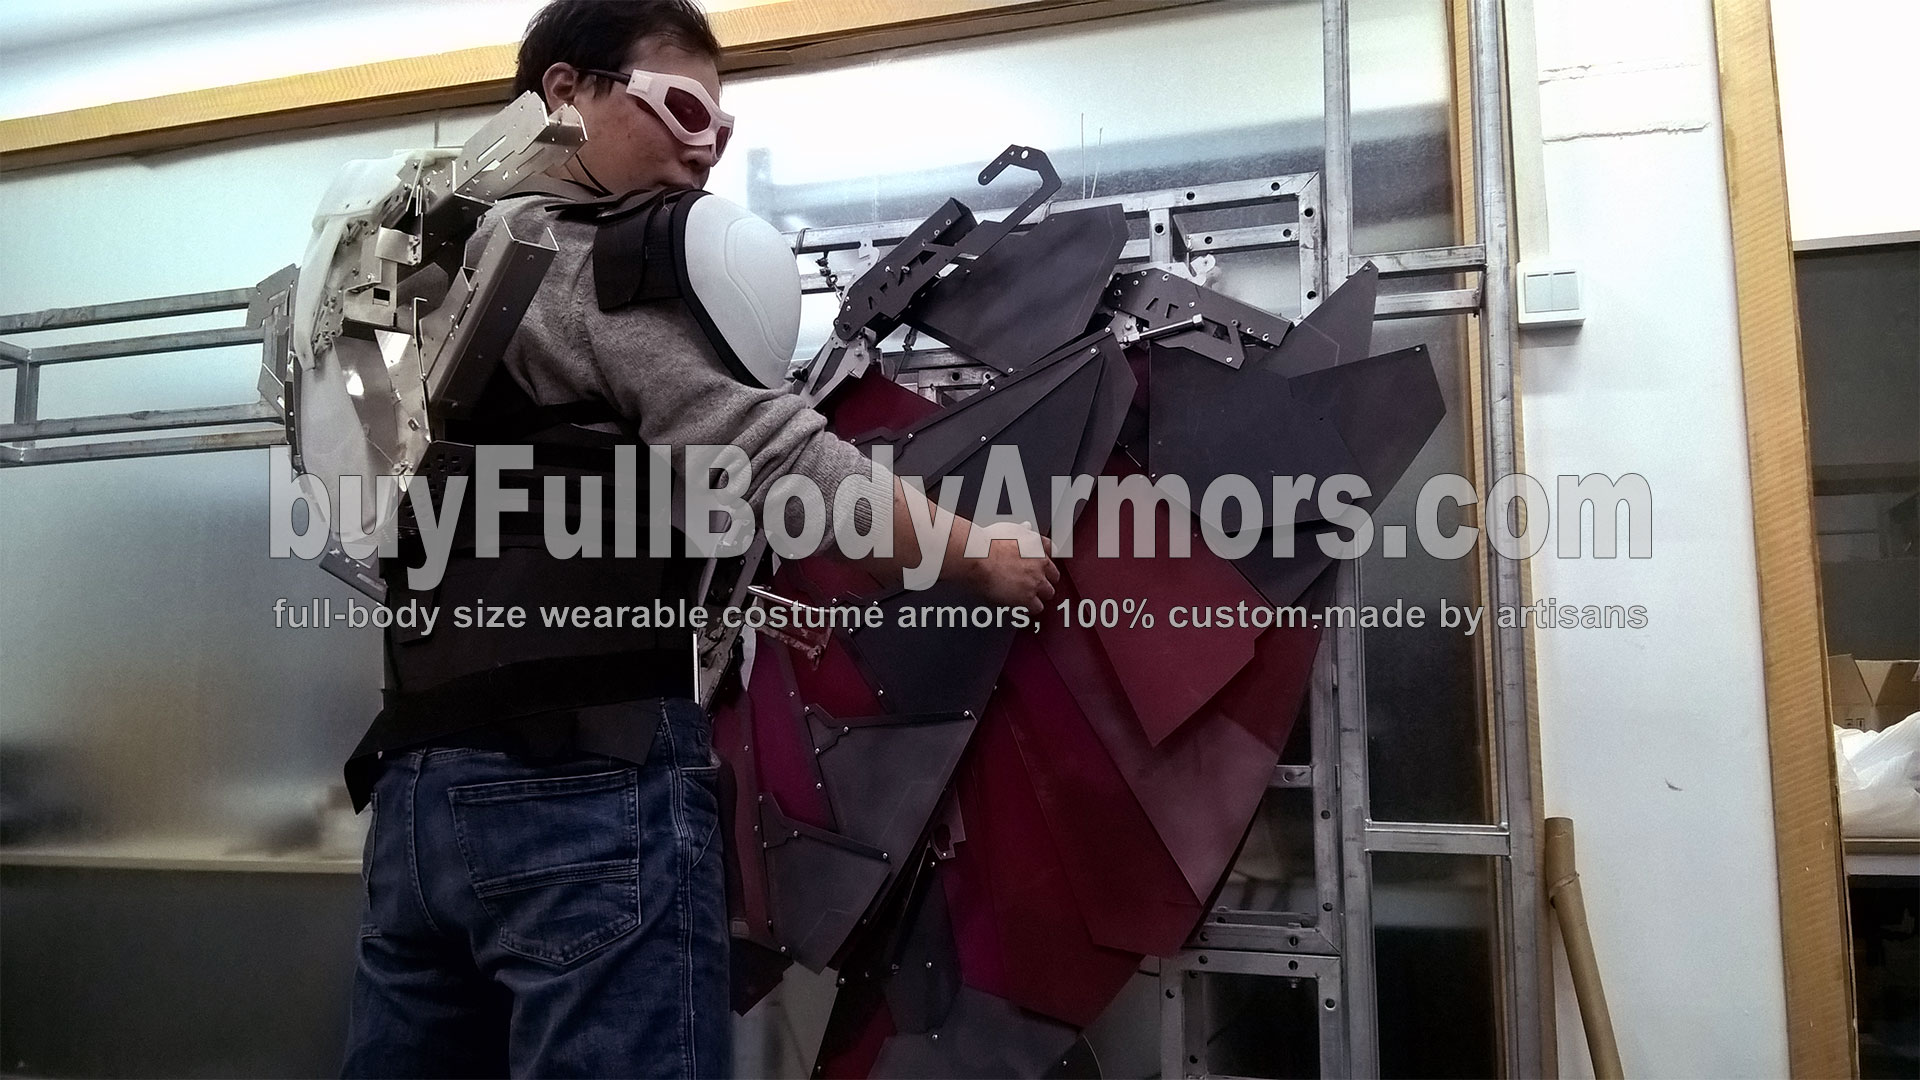 The Avengers 2 Wearable Falcon Suit Prototype - wings, chest armor, back flying pack 3